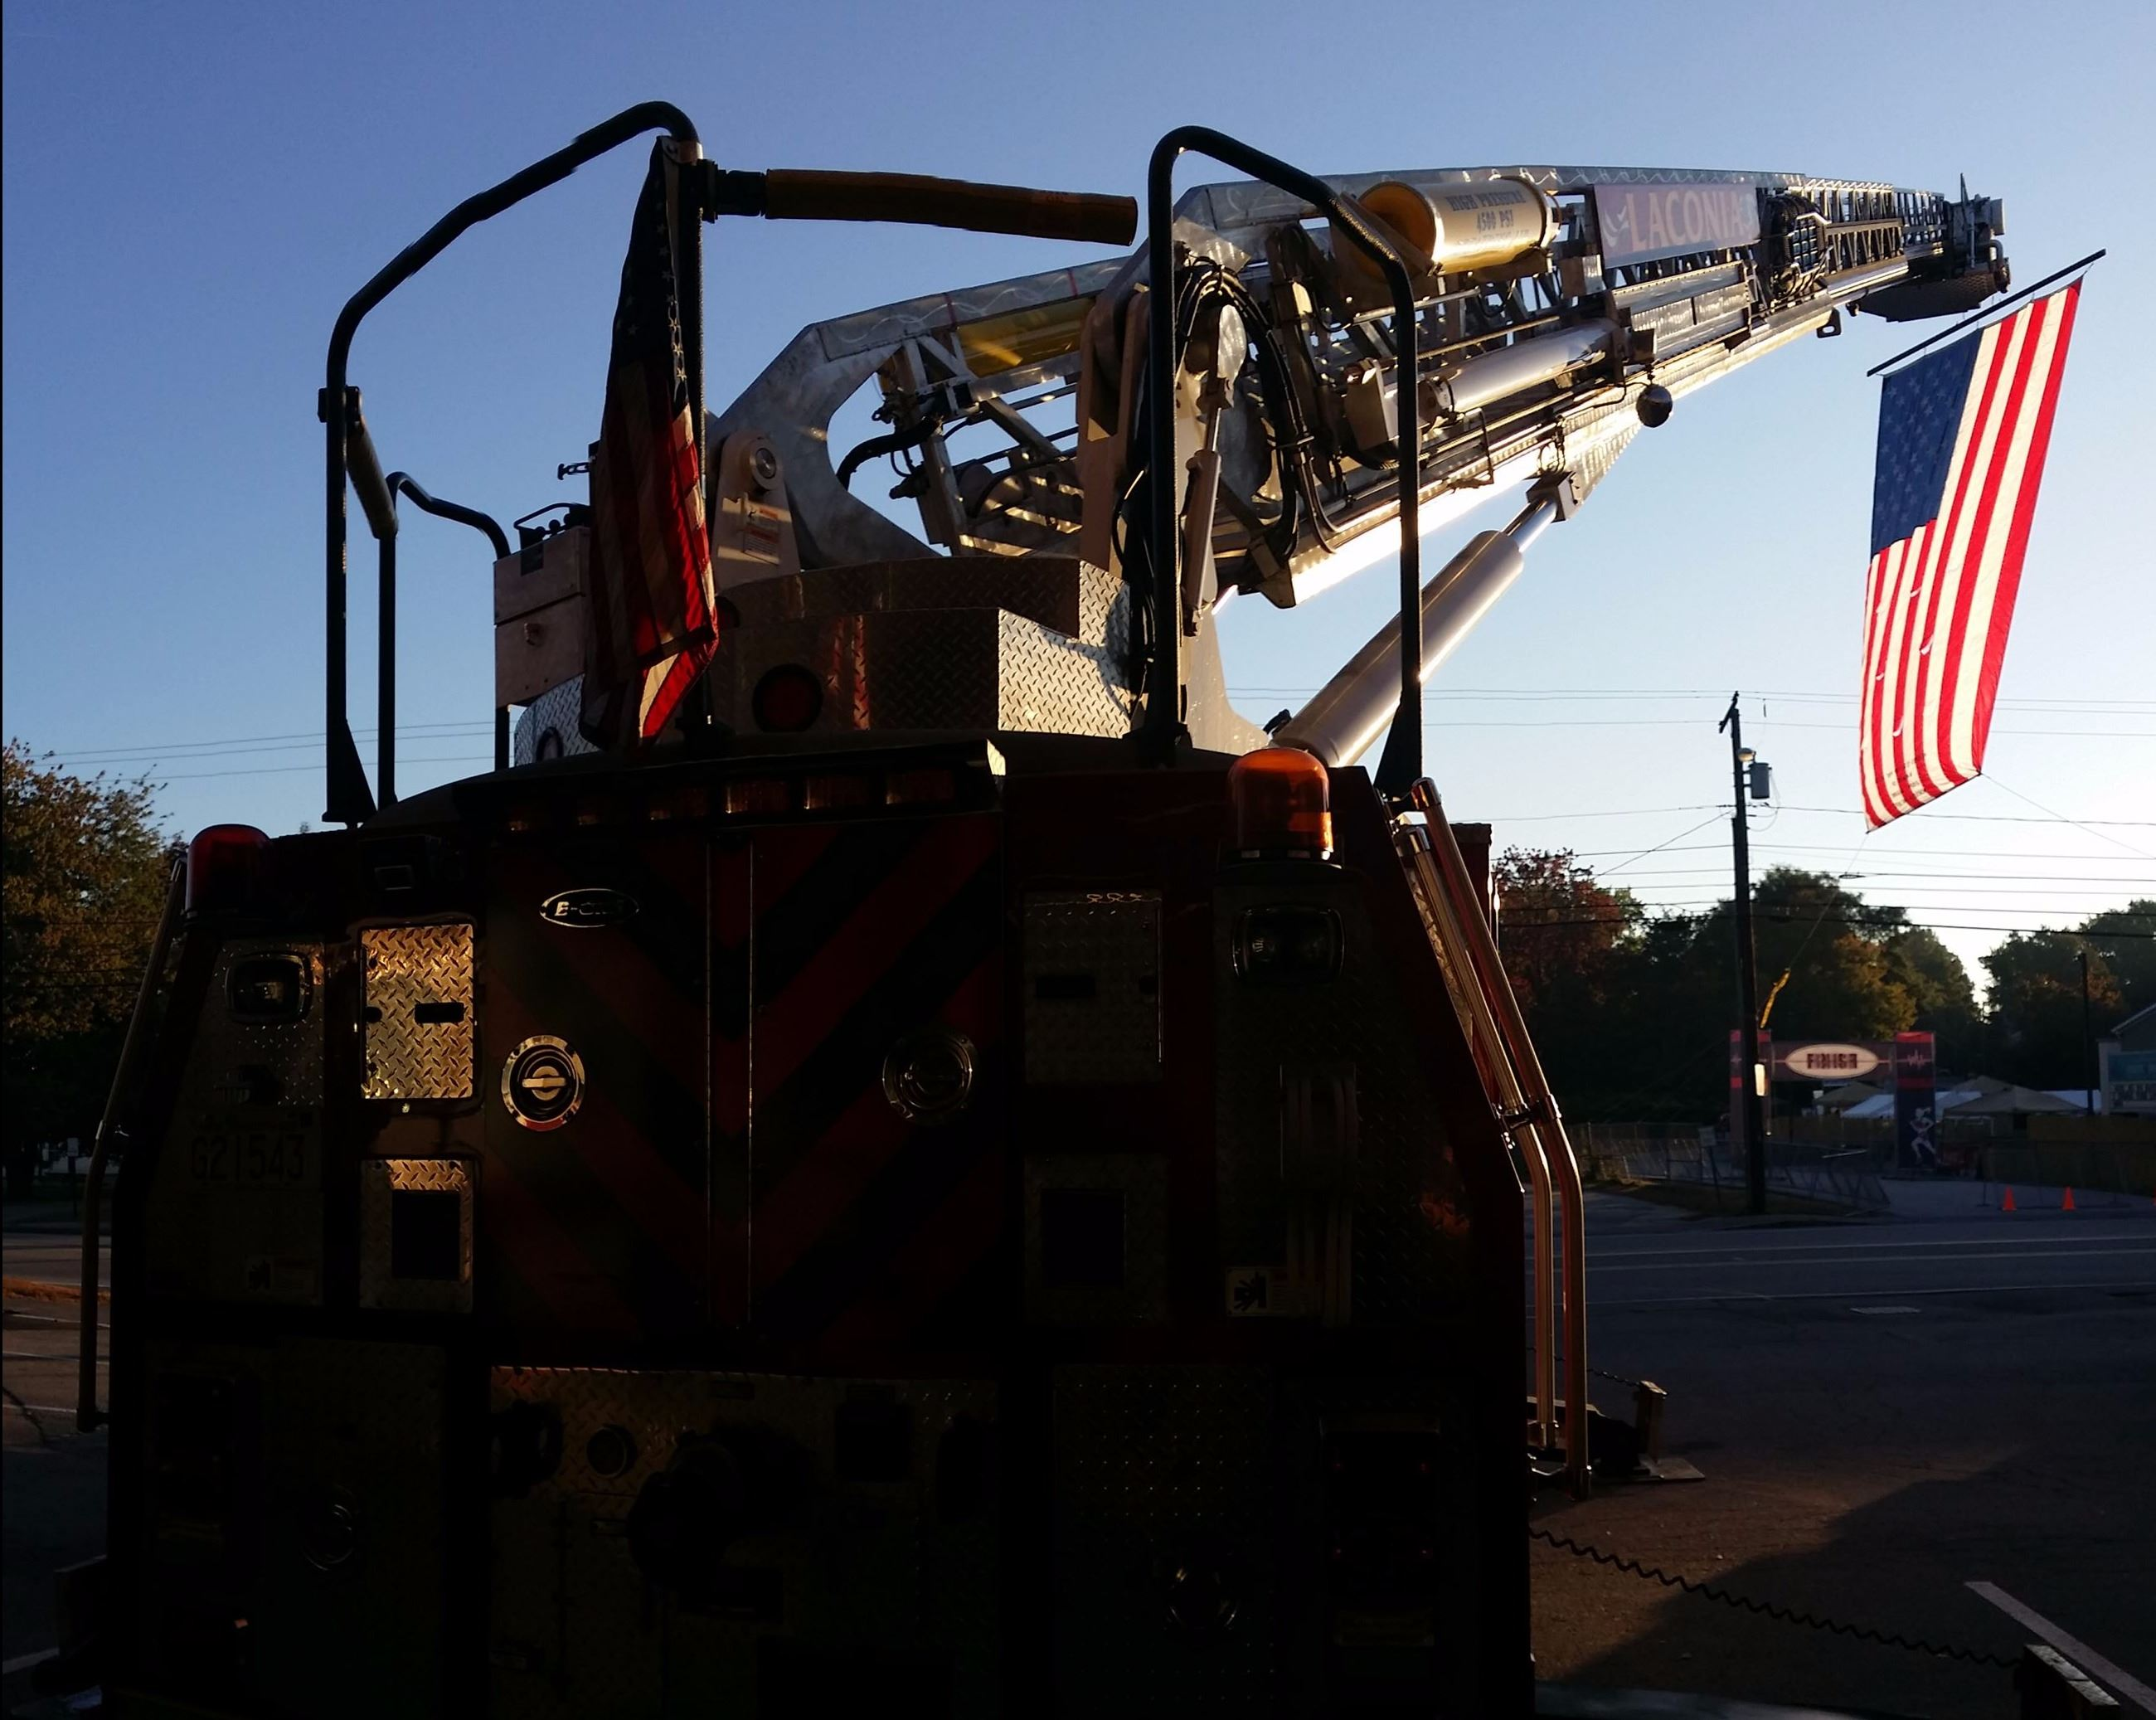 Aerial Ladder with large American flag hanging from the bucket in the morning sunlight